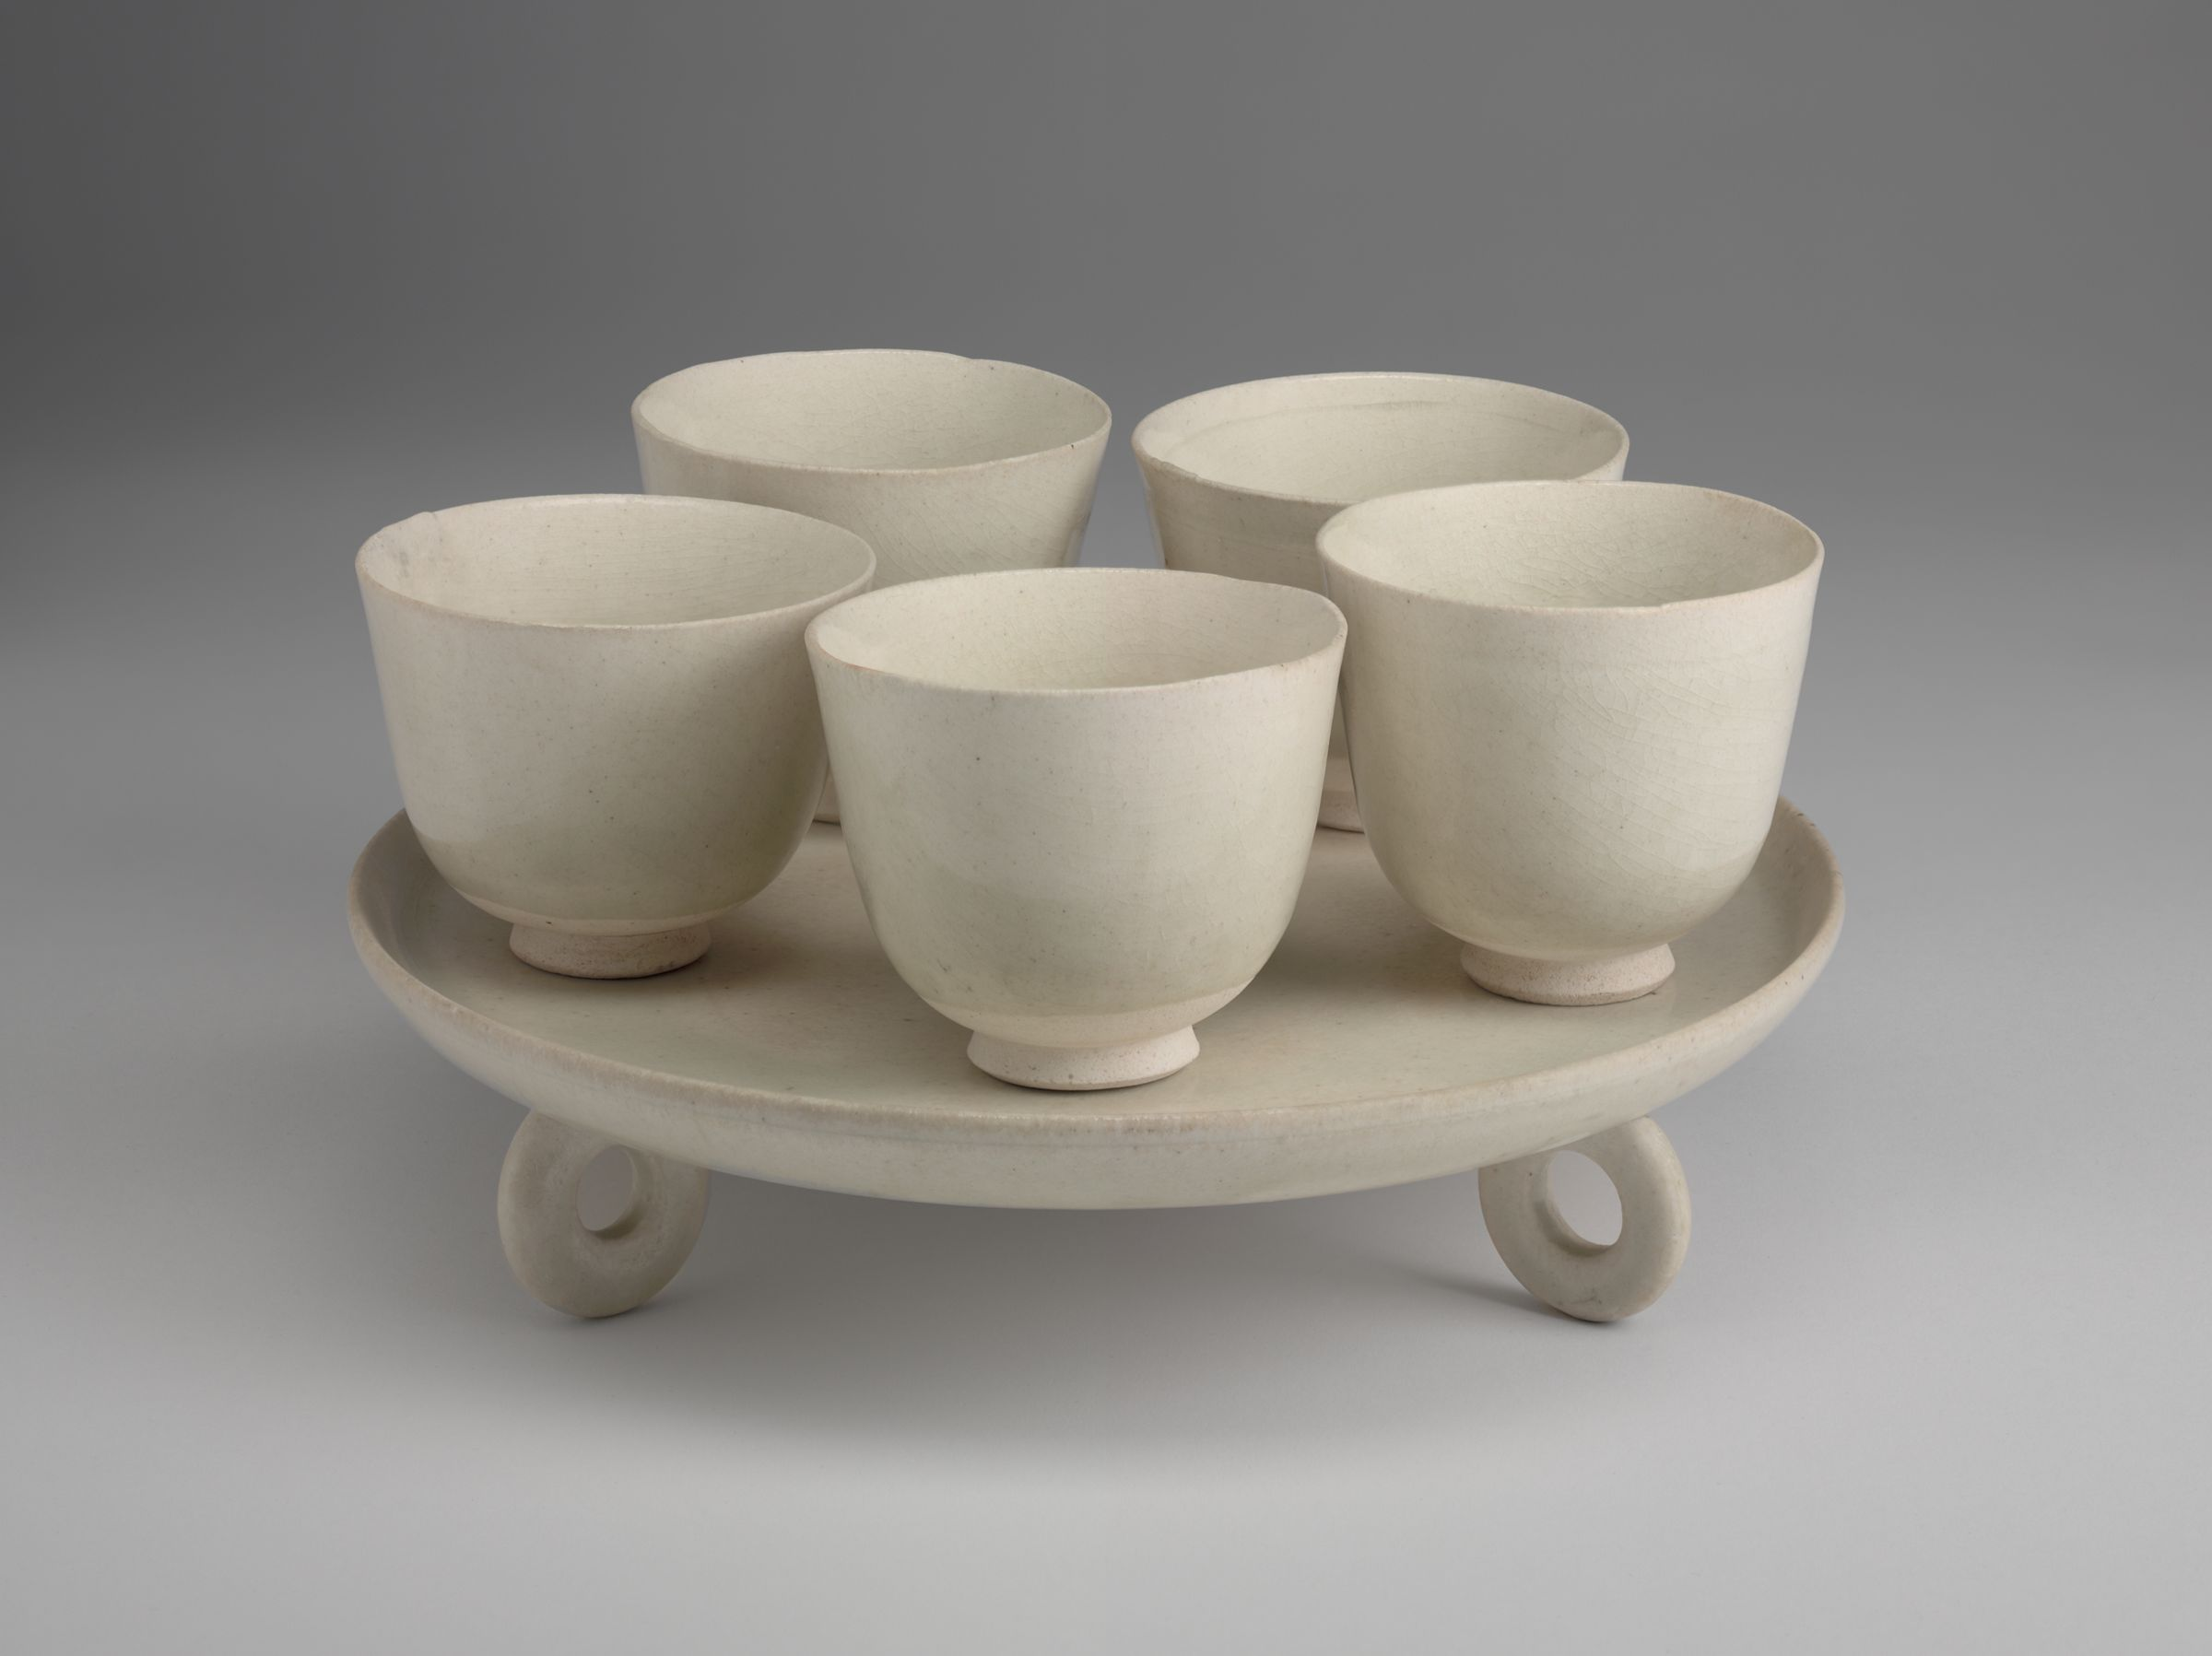 Circular Tray With Three Ring-Form-Feet And Five Cups